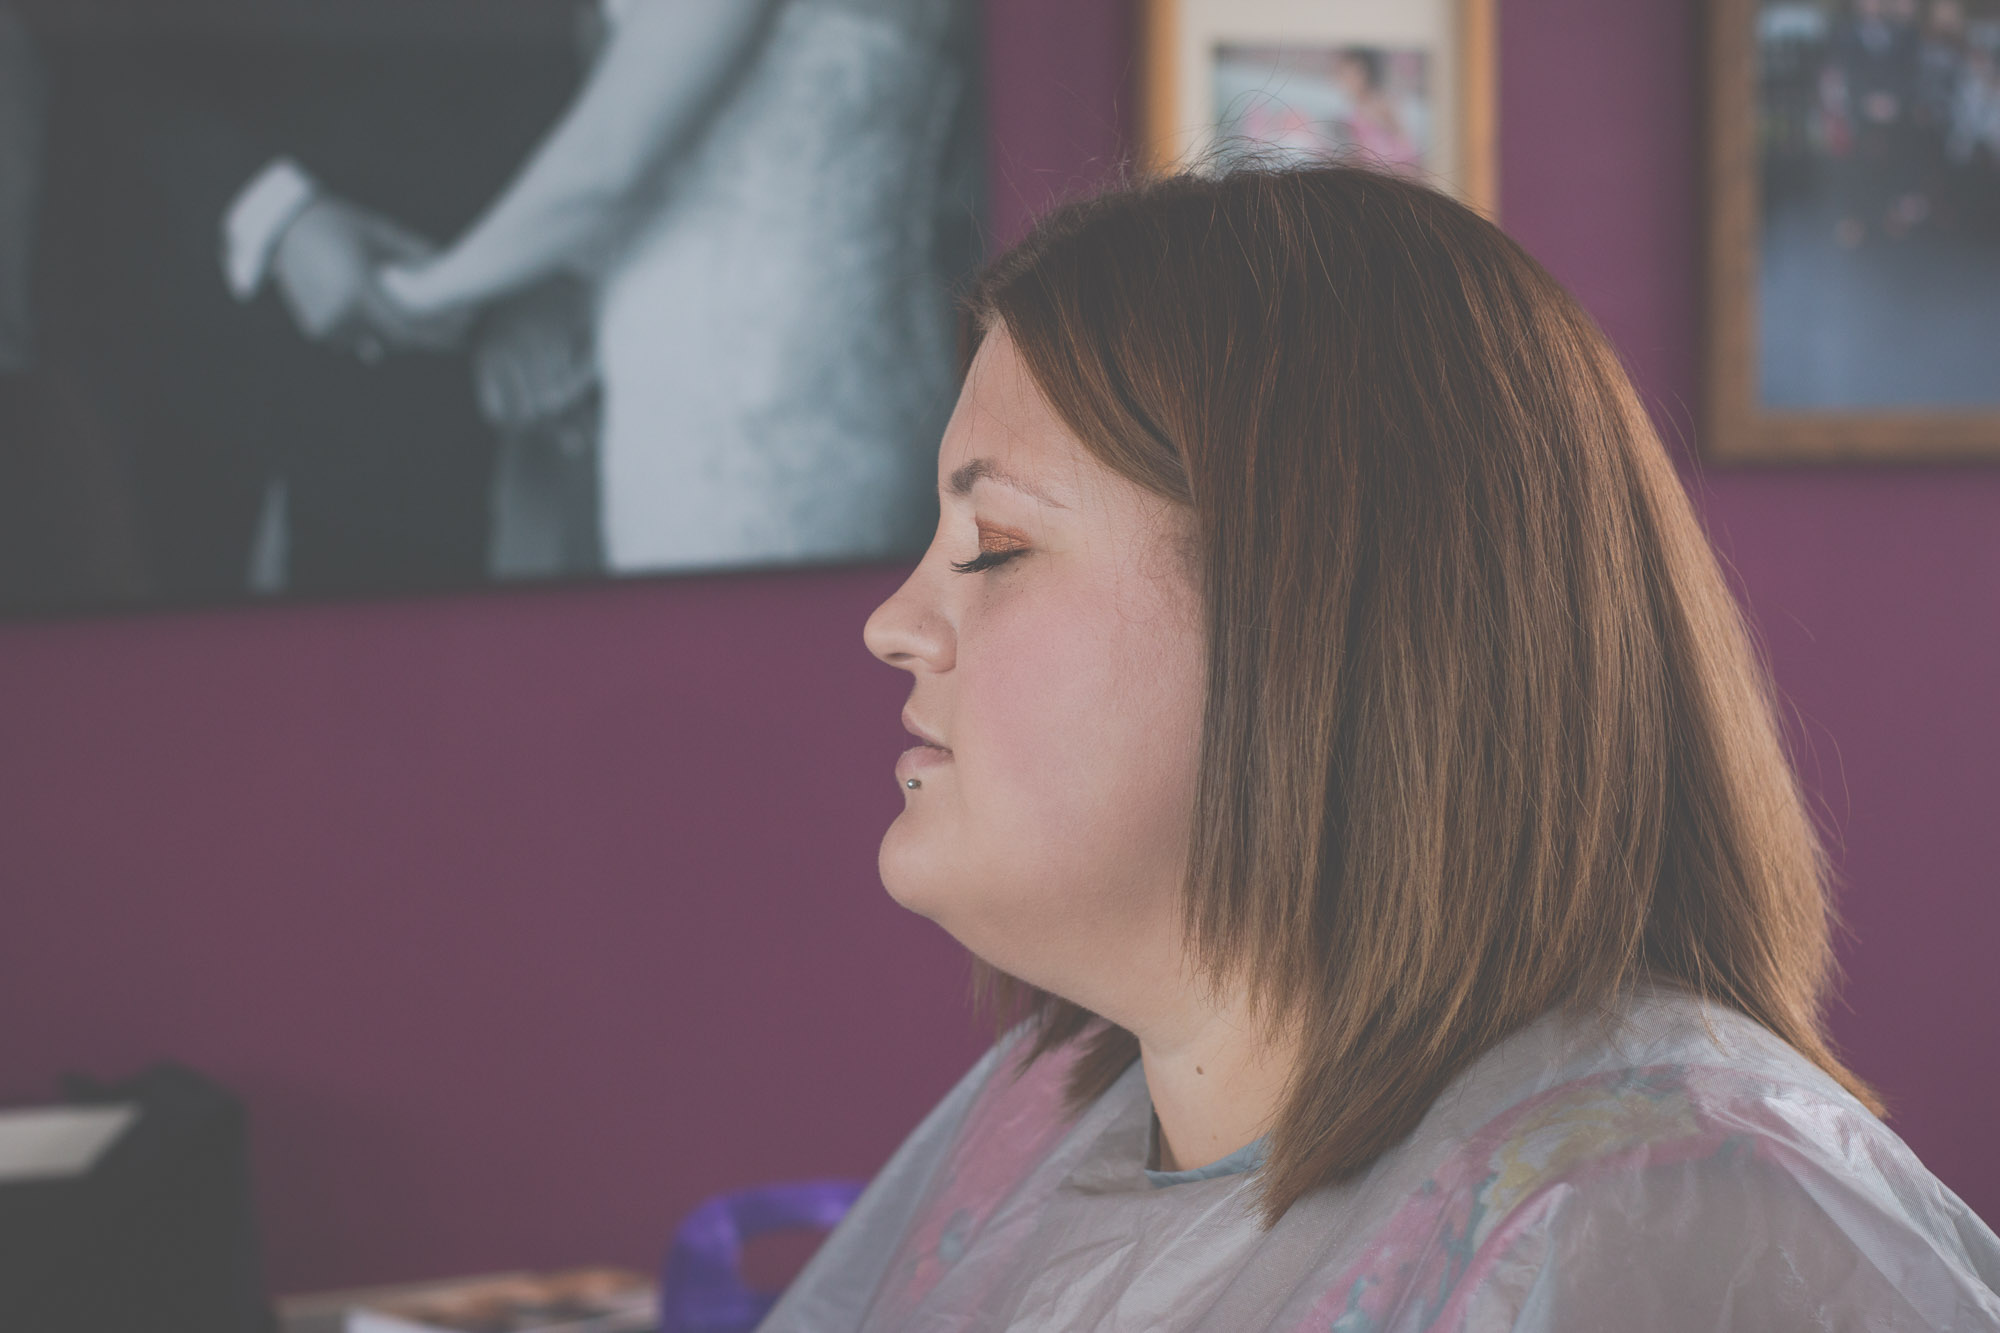 makeover-pamper-portraits-photos-keighley-skipton-bradford-leeds-chicca-photography-4.jpg